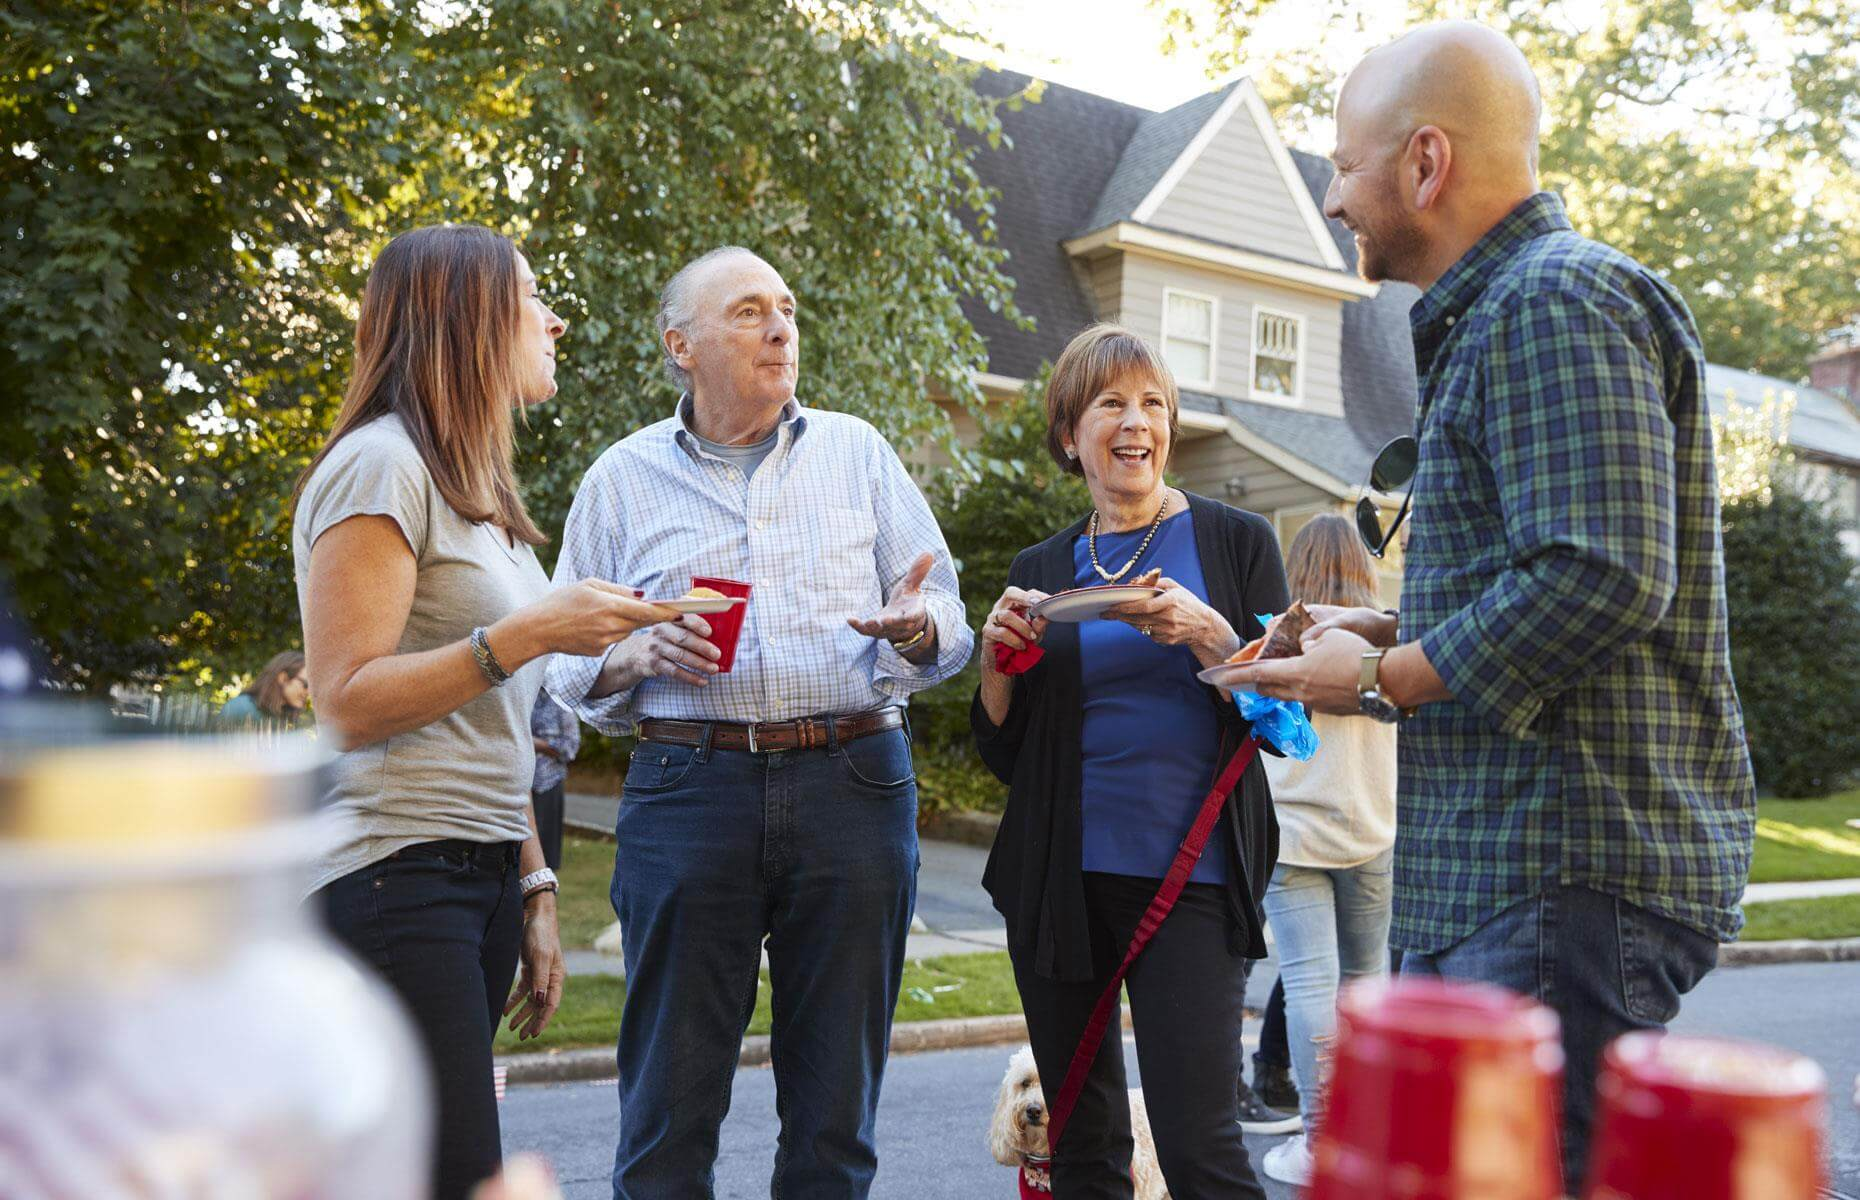 Moved Home? Get Familiar With Your New Neighborhood With Our Top Tips